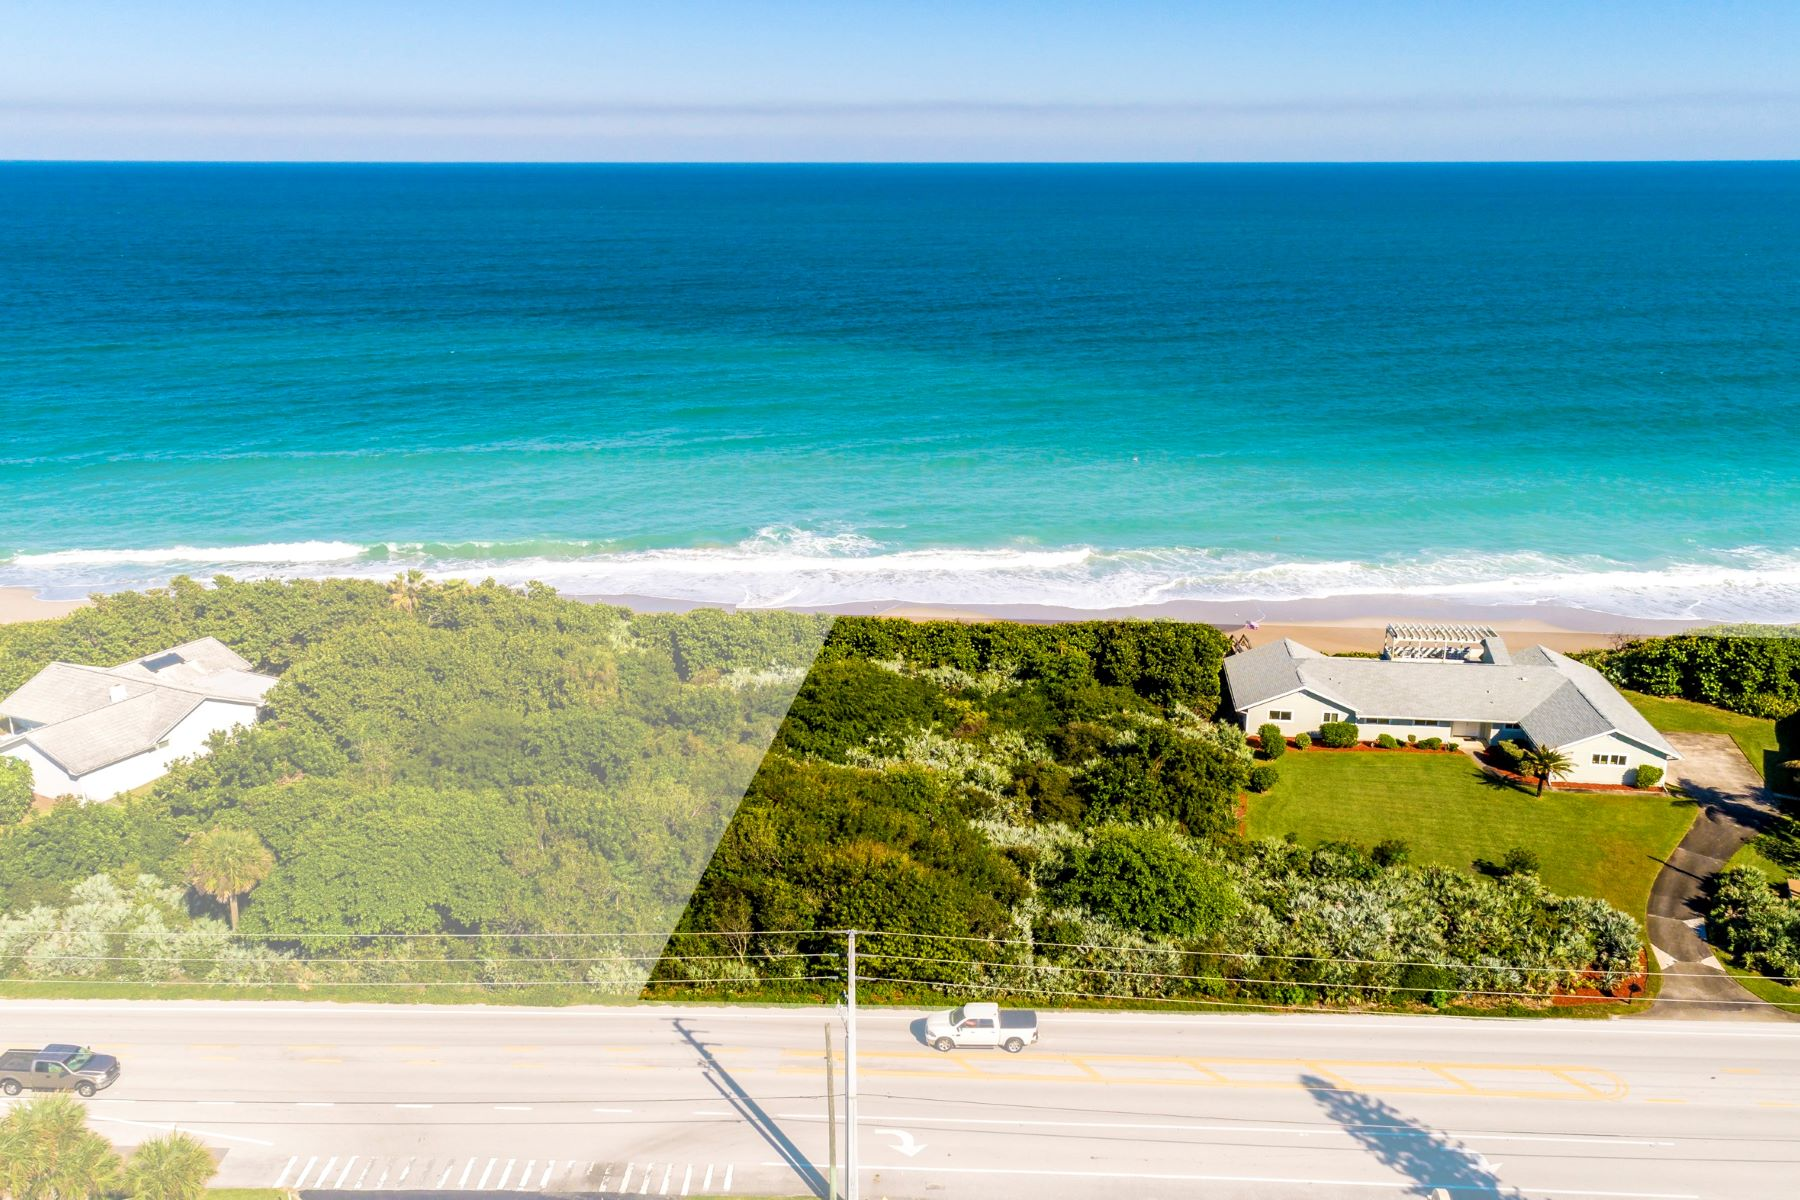 Property 용 매매 에 Incredible Oceanfront Property Featuring 250' of Direct Ocean Frontage 3785 S Highway A1A Melbourne Beach, 플로리다 32951 미국